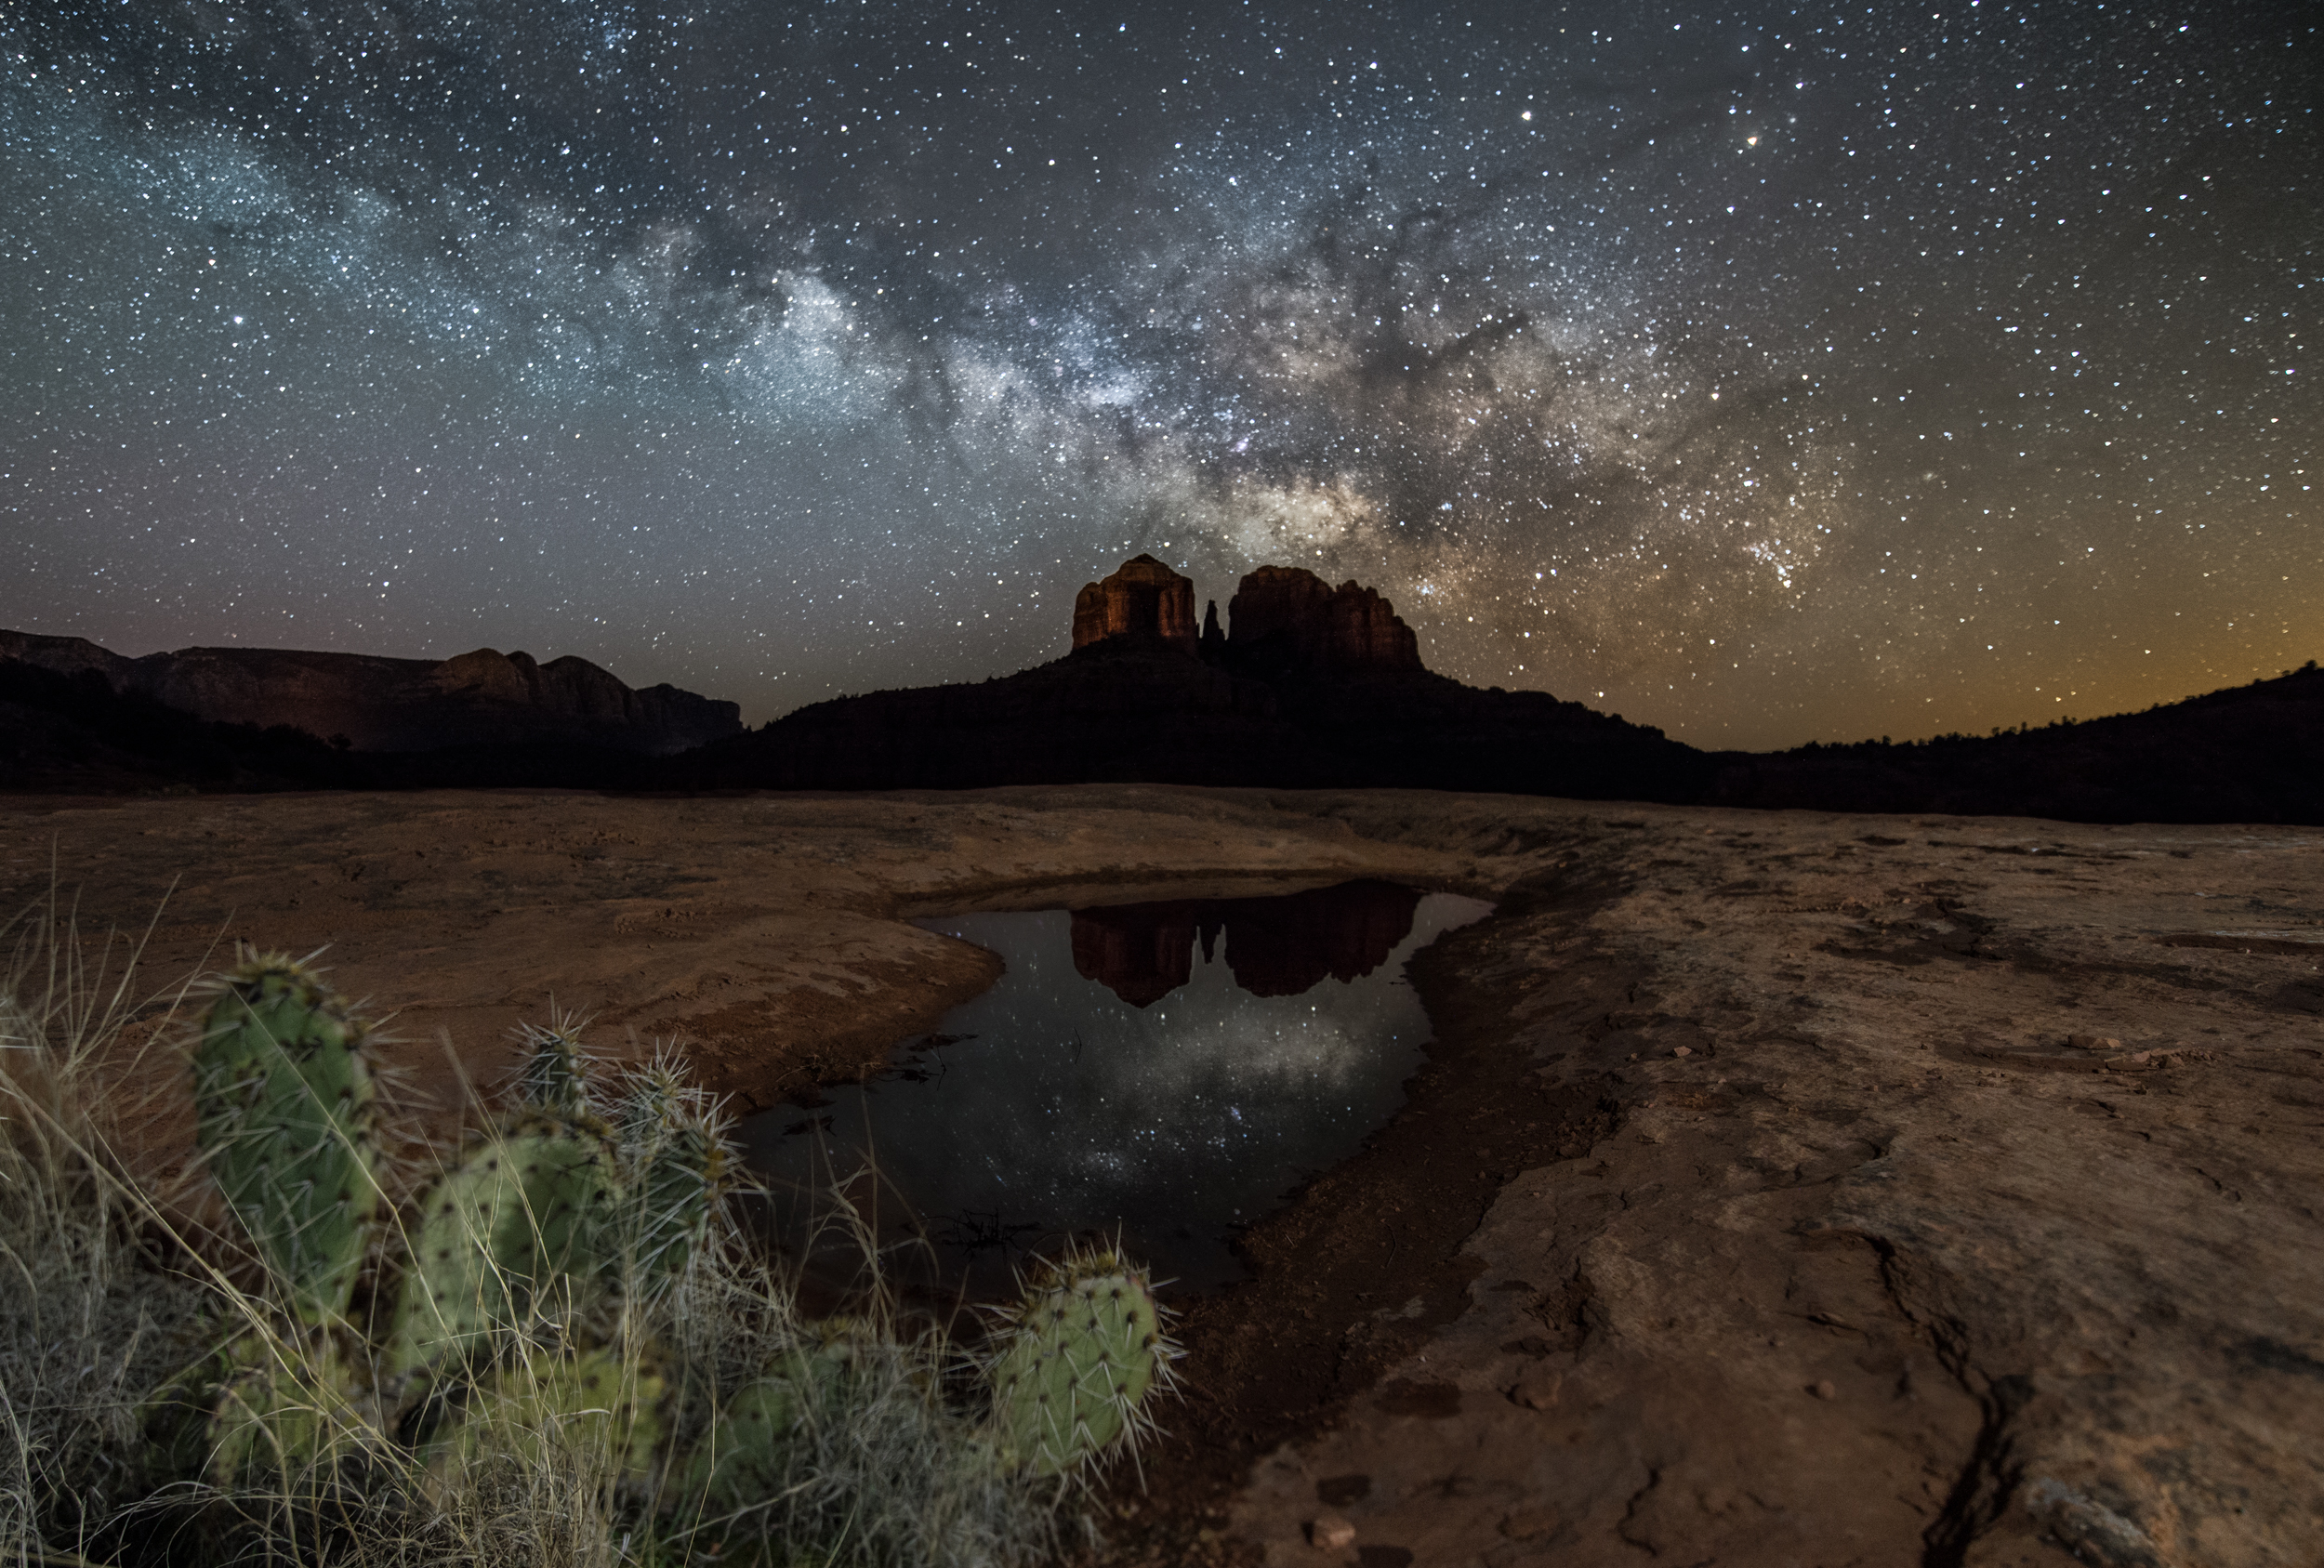 Astrophotography Gallery - The universe in all its glory.